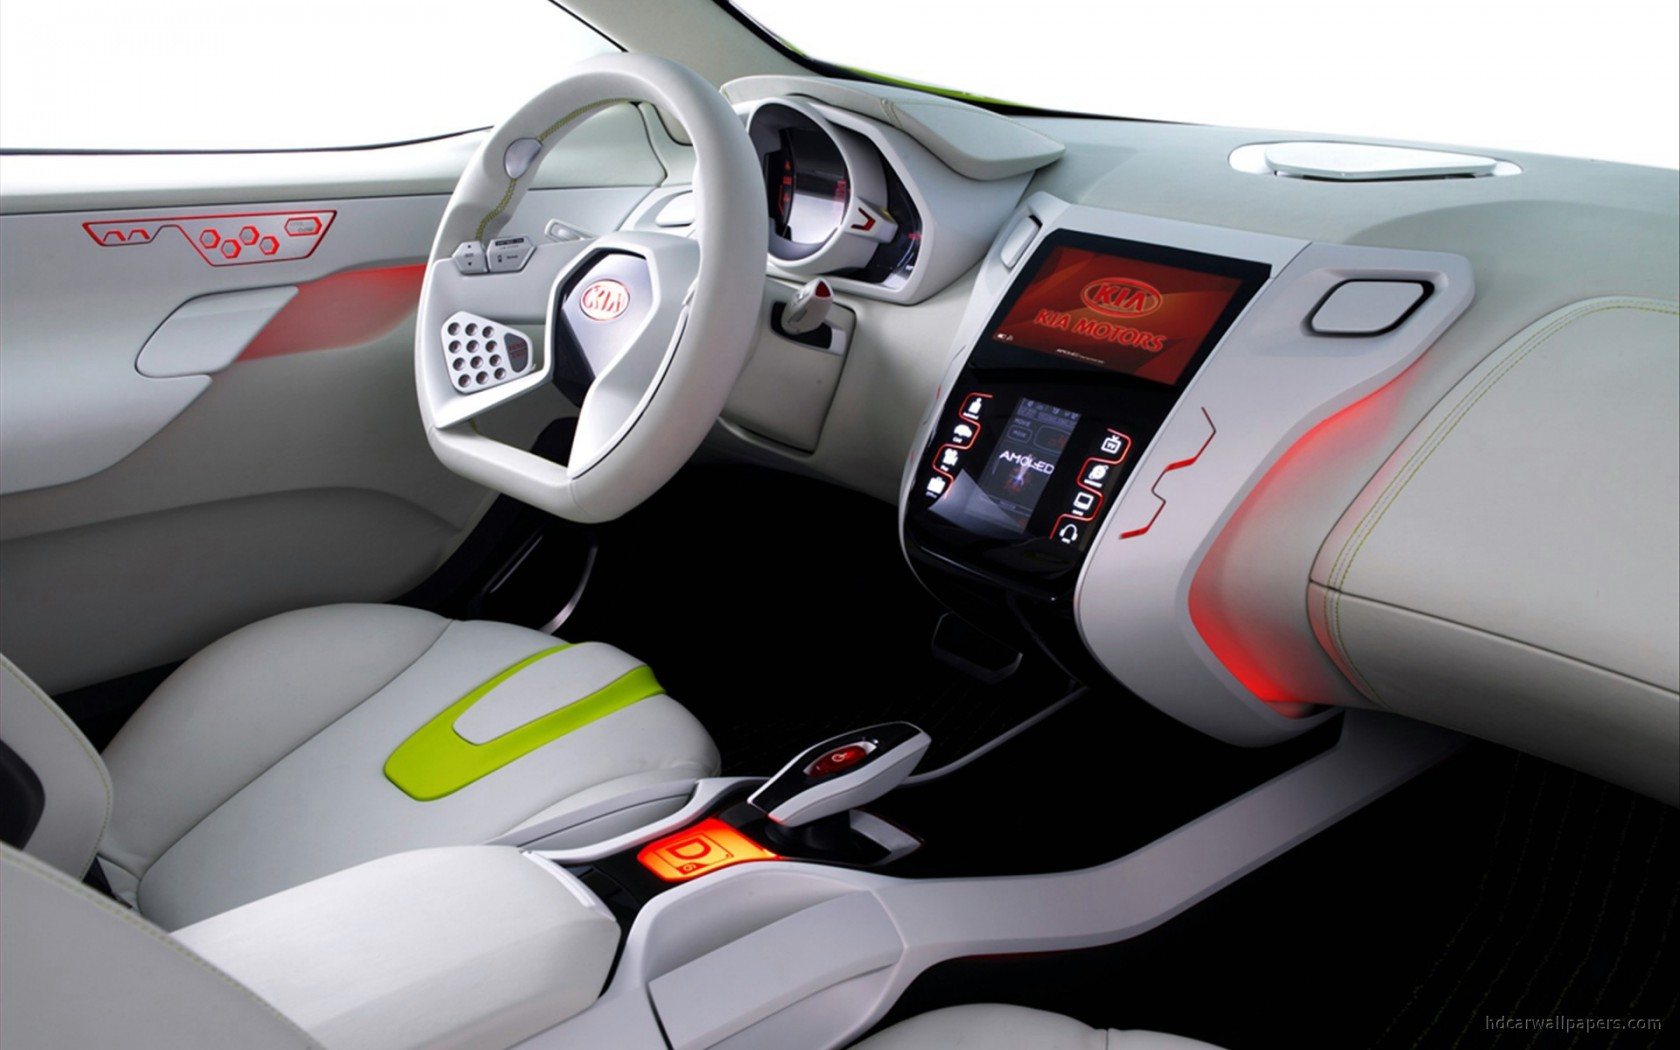 Car Wallpapers 2014 Download Kia Knd 4 Concept Interior Wallpaper Hd Car Wallpapers